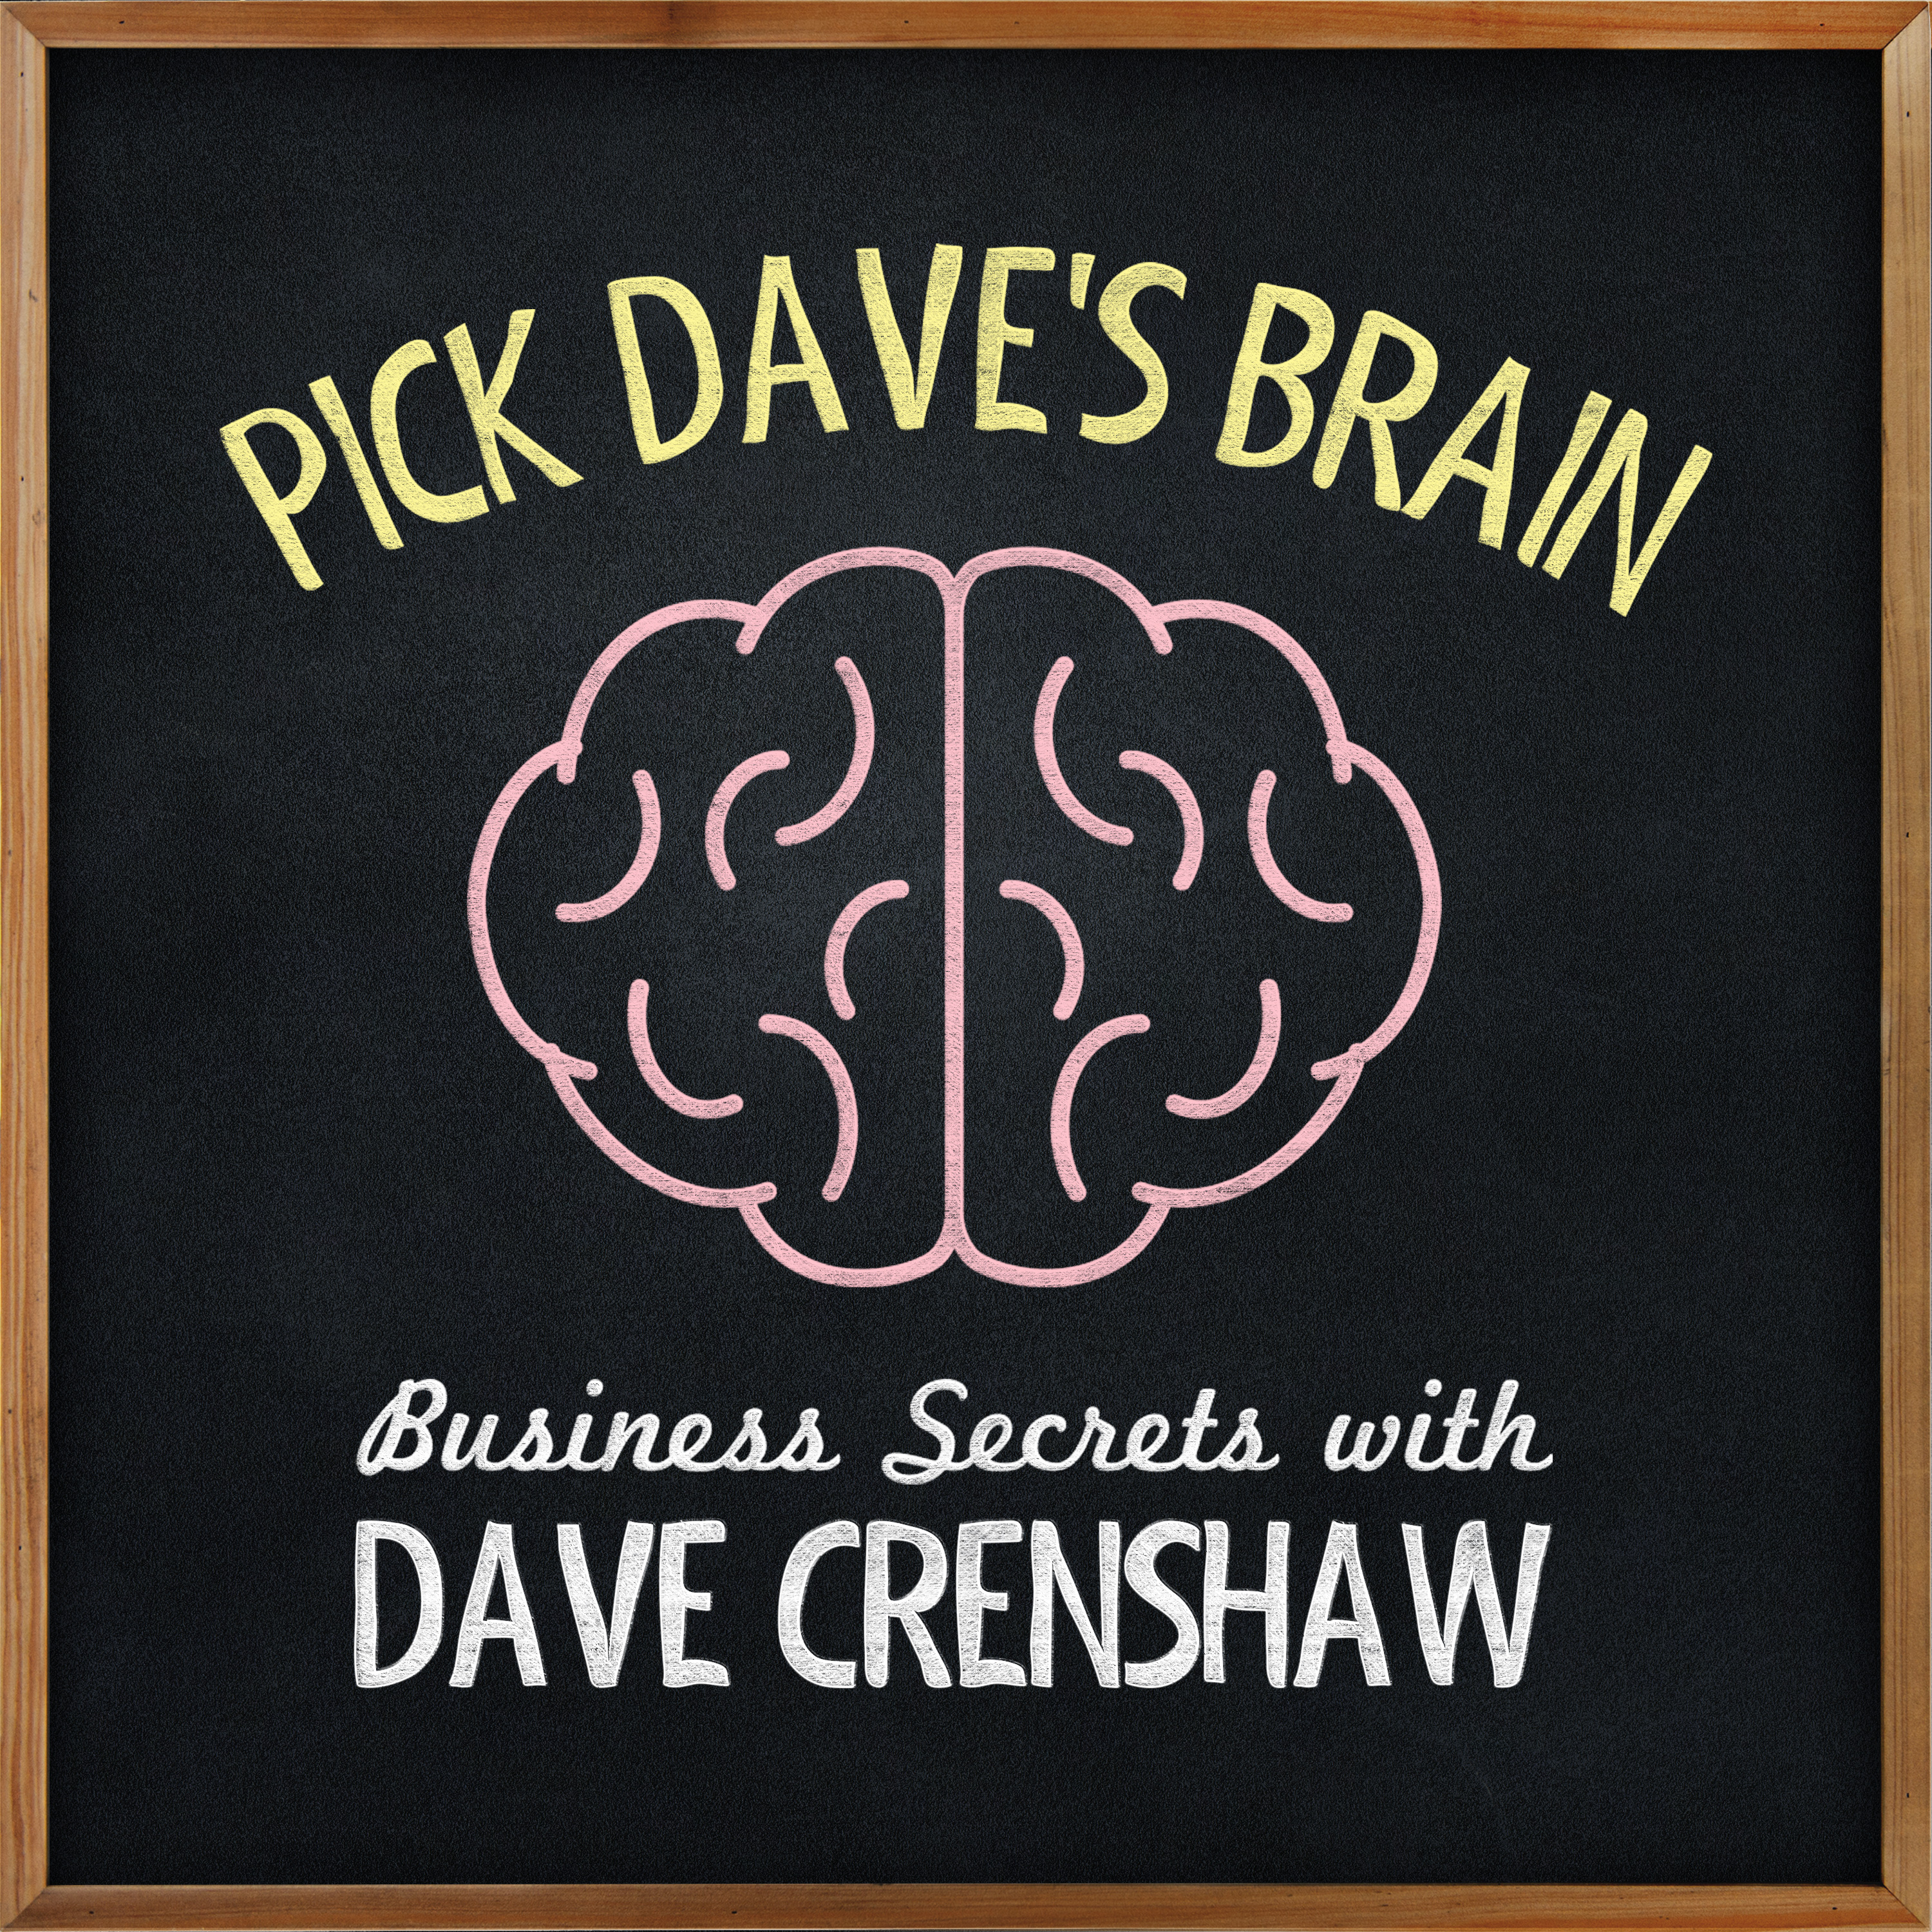 Business Secrets with Dave Crenshaw